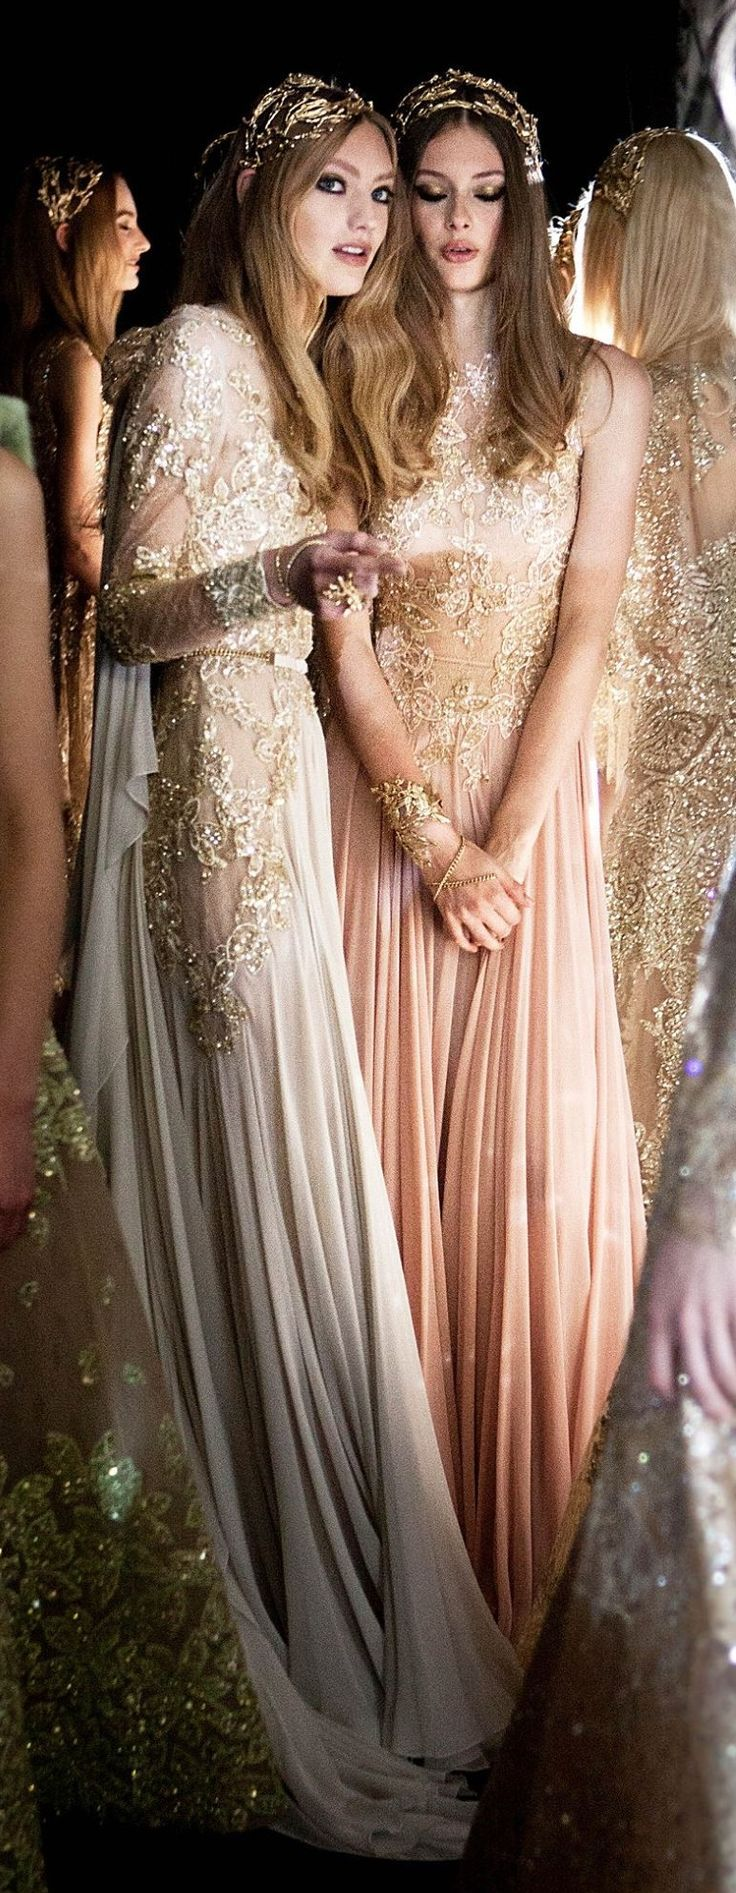 Backstage at Elie Saab HC F/W 2015-2016 — lace, embembroidery, graceful gowns, gorgeous dresses